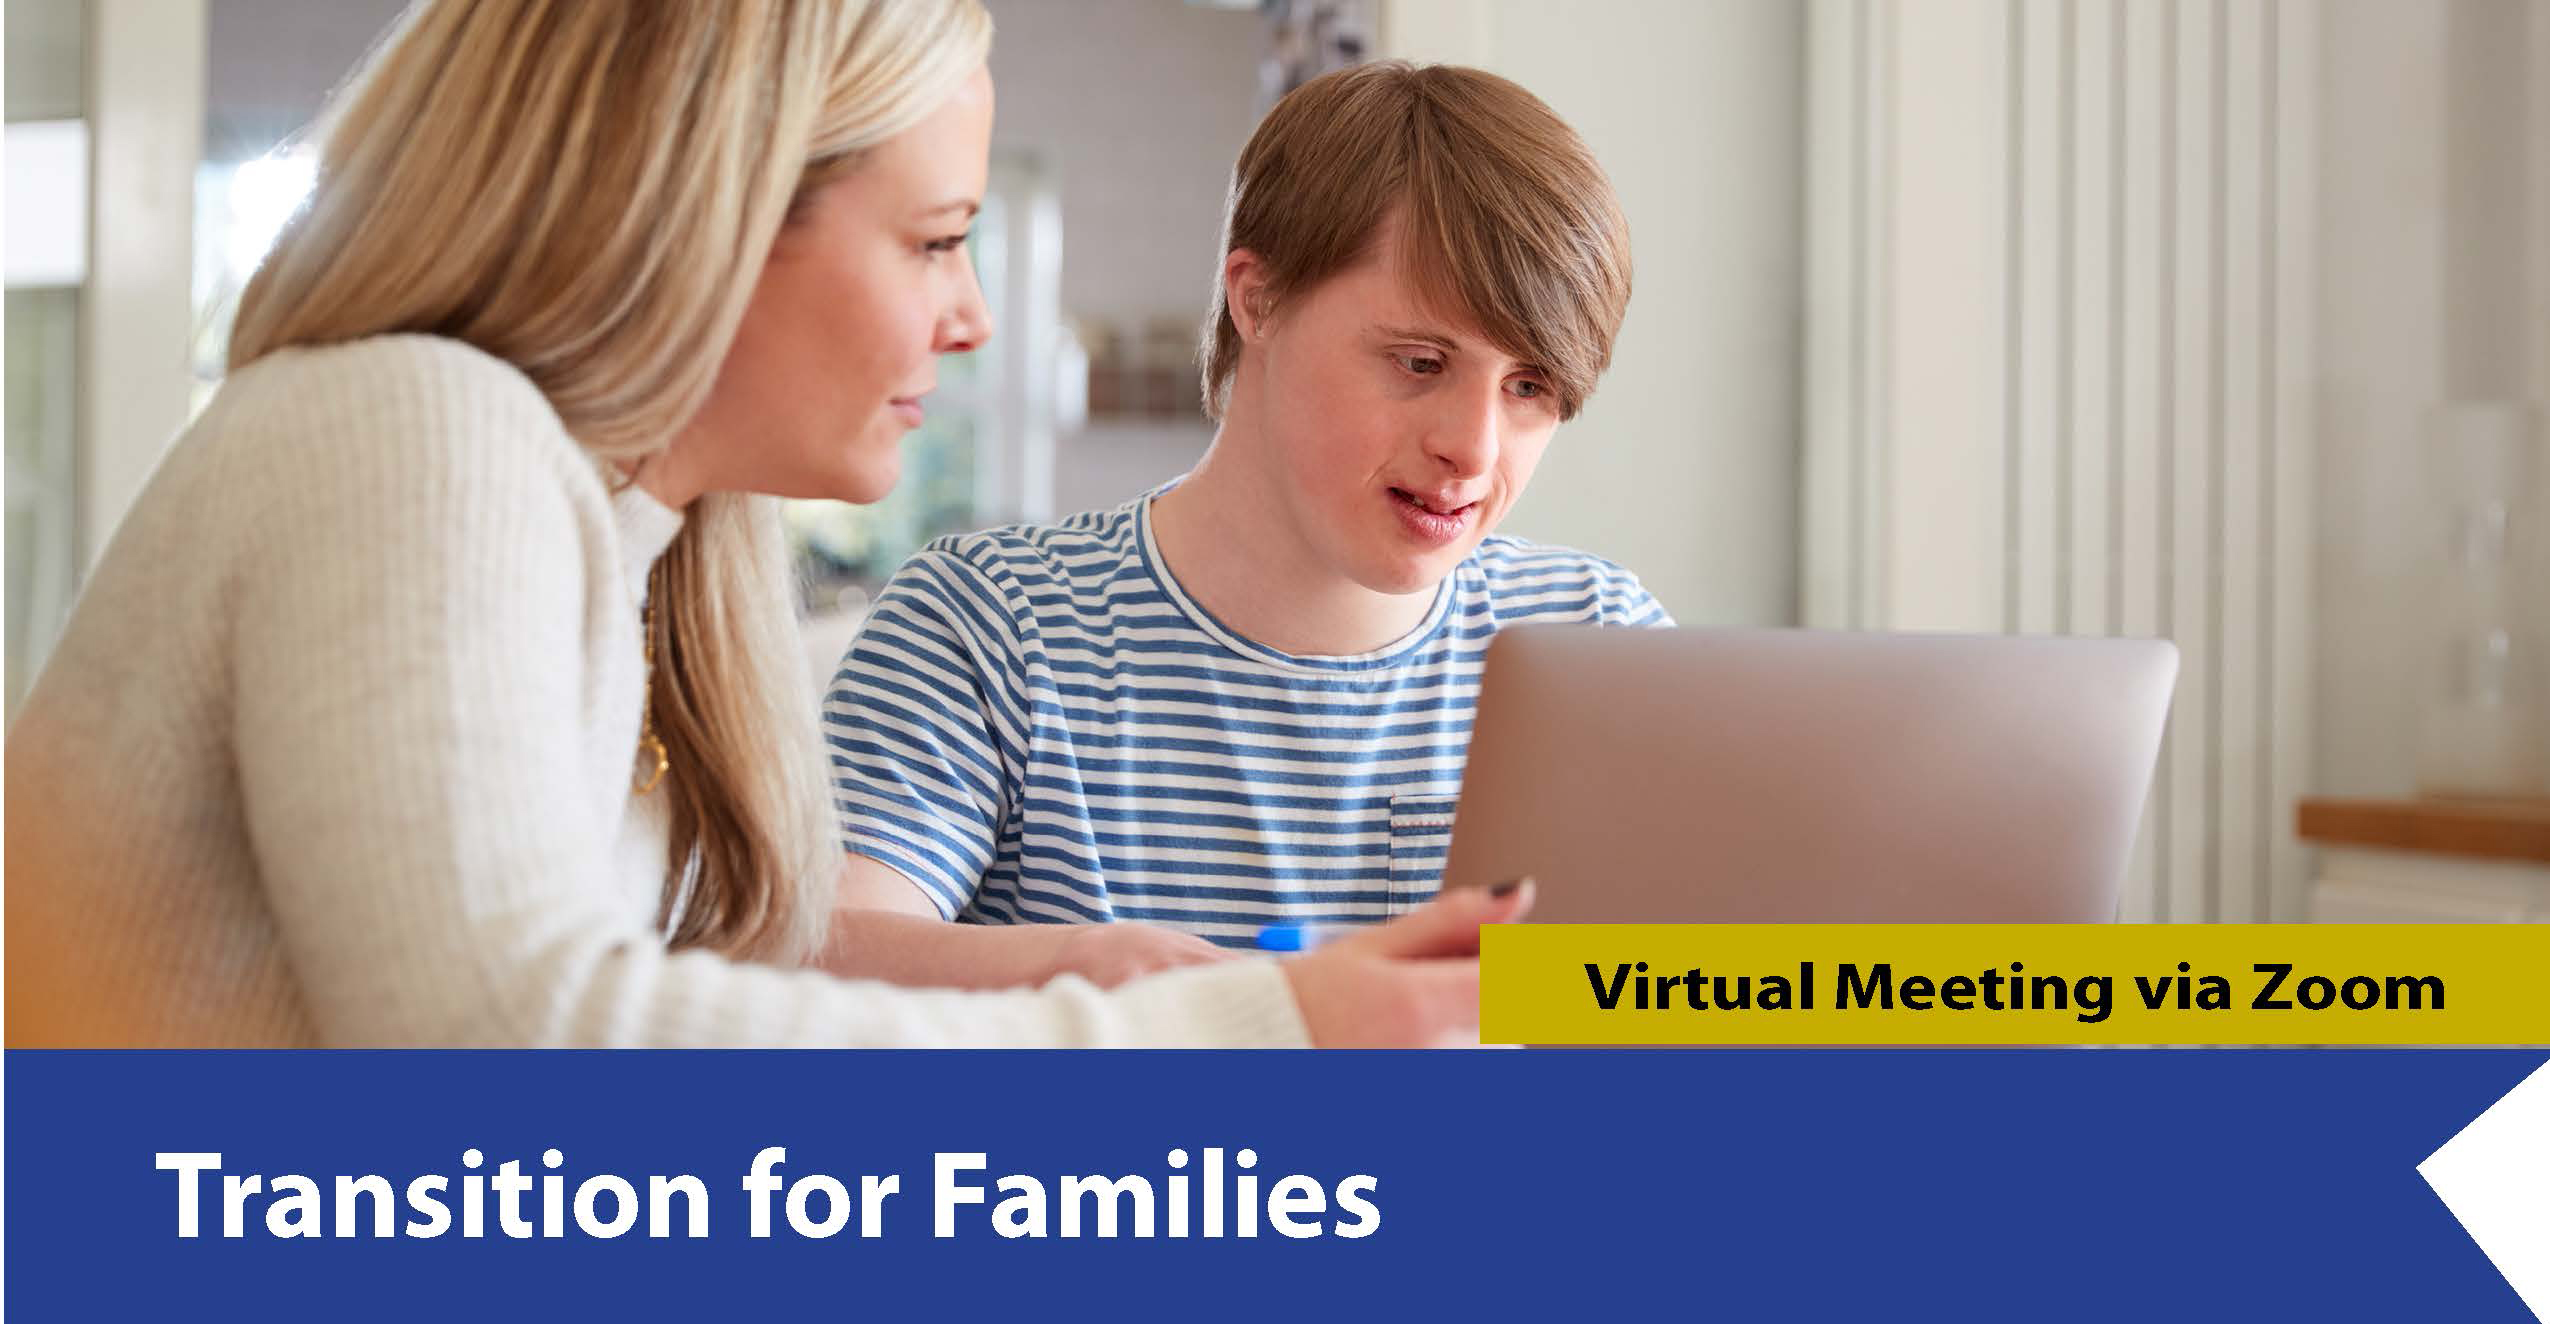 Photo of a parent and child at a computer with the title Transition for Families underneath.